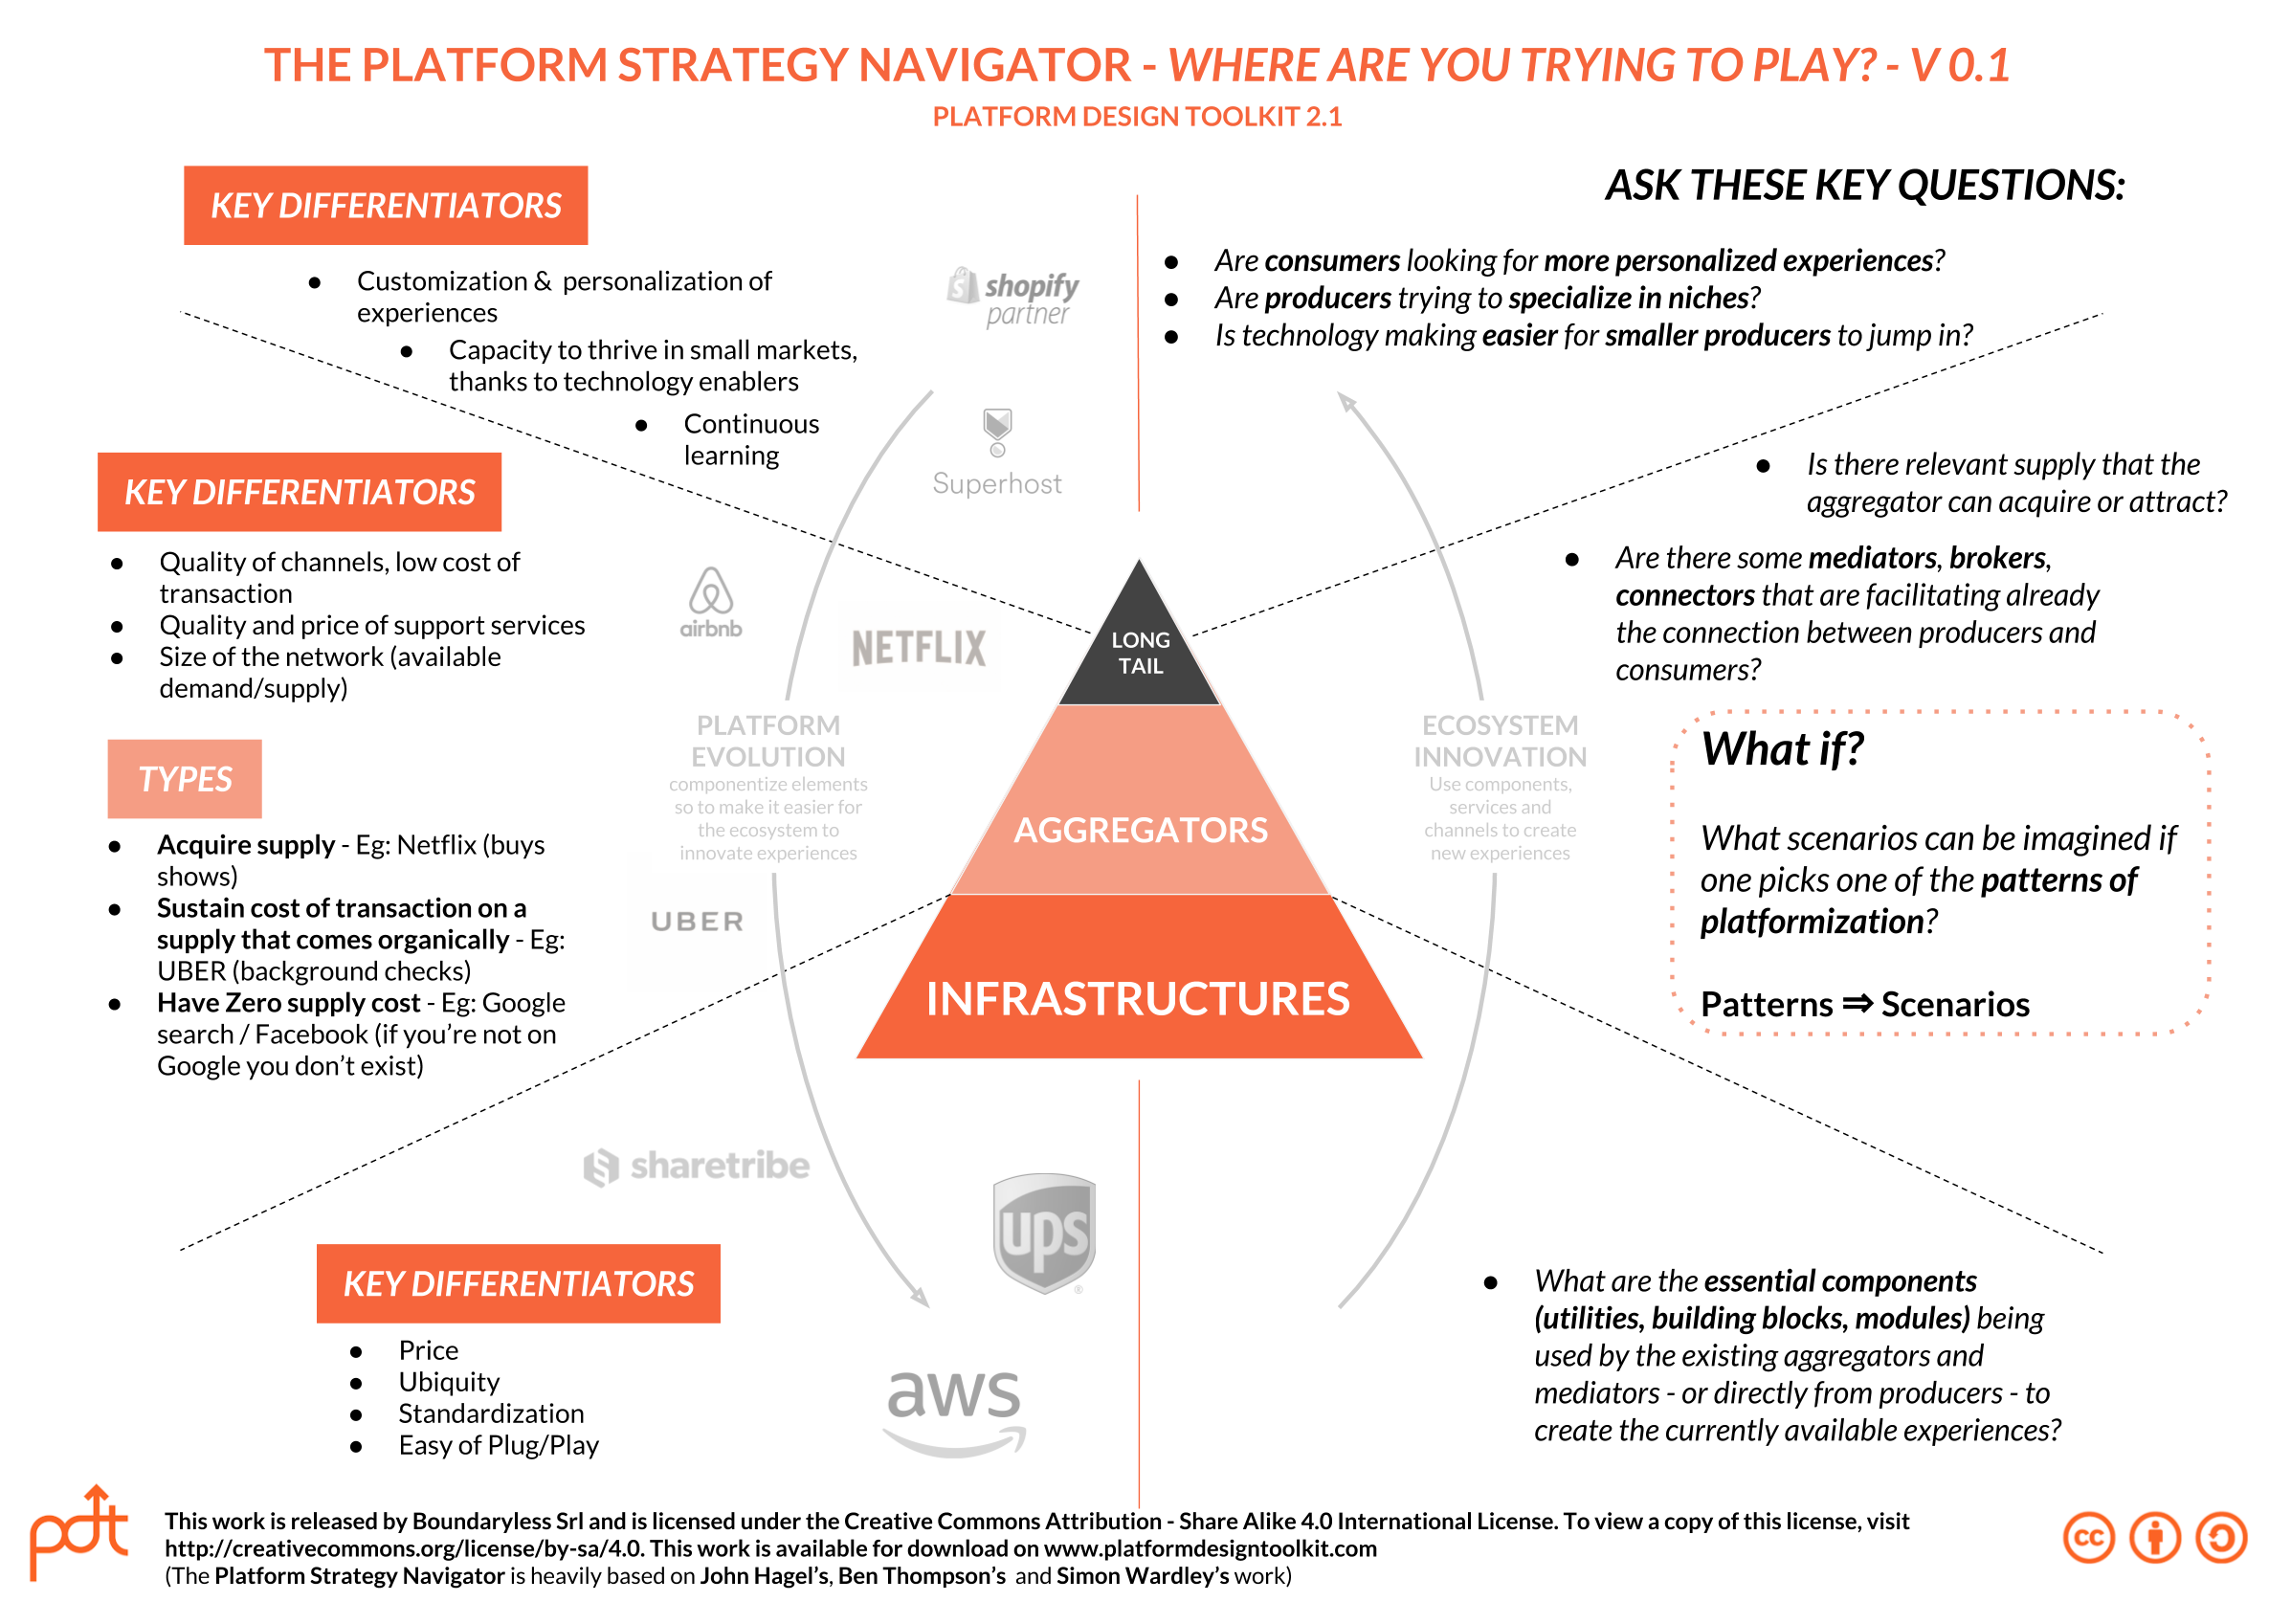 Long Tails, Aggregators & Infrastructures - Stories of